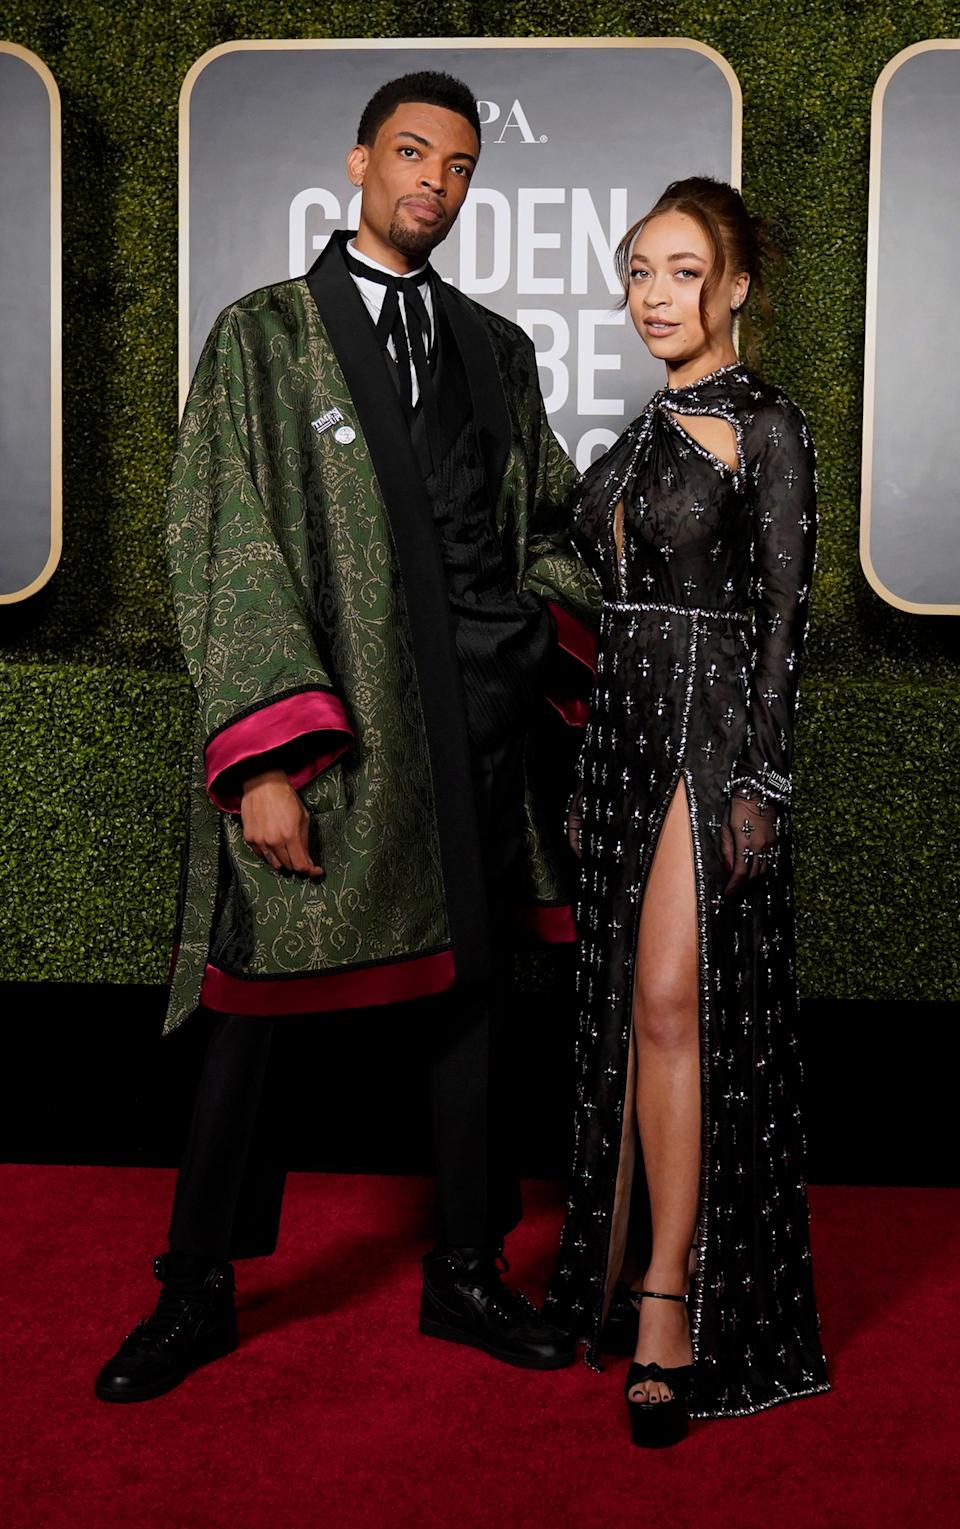 Golden Globe 2021 ambassadors Jackson Lee and Satchel Lee made a red carpet statement. Jackson rocked a patterned overcoat with a Times Up pin, while his sister, Satchel, stunned in an embellished black gown with a high slit.